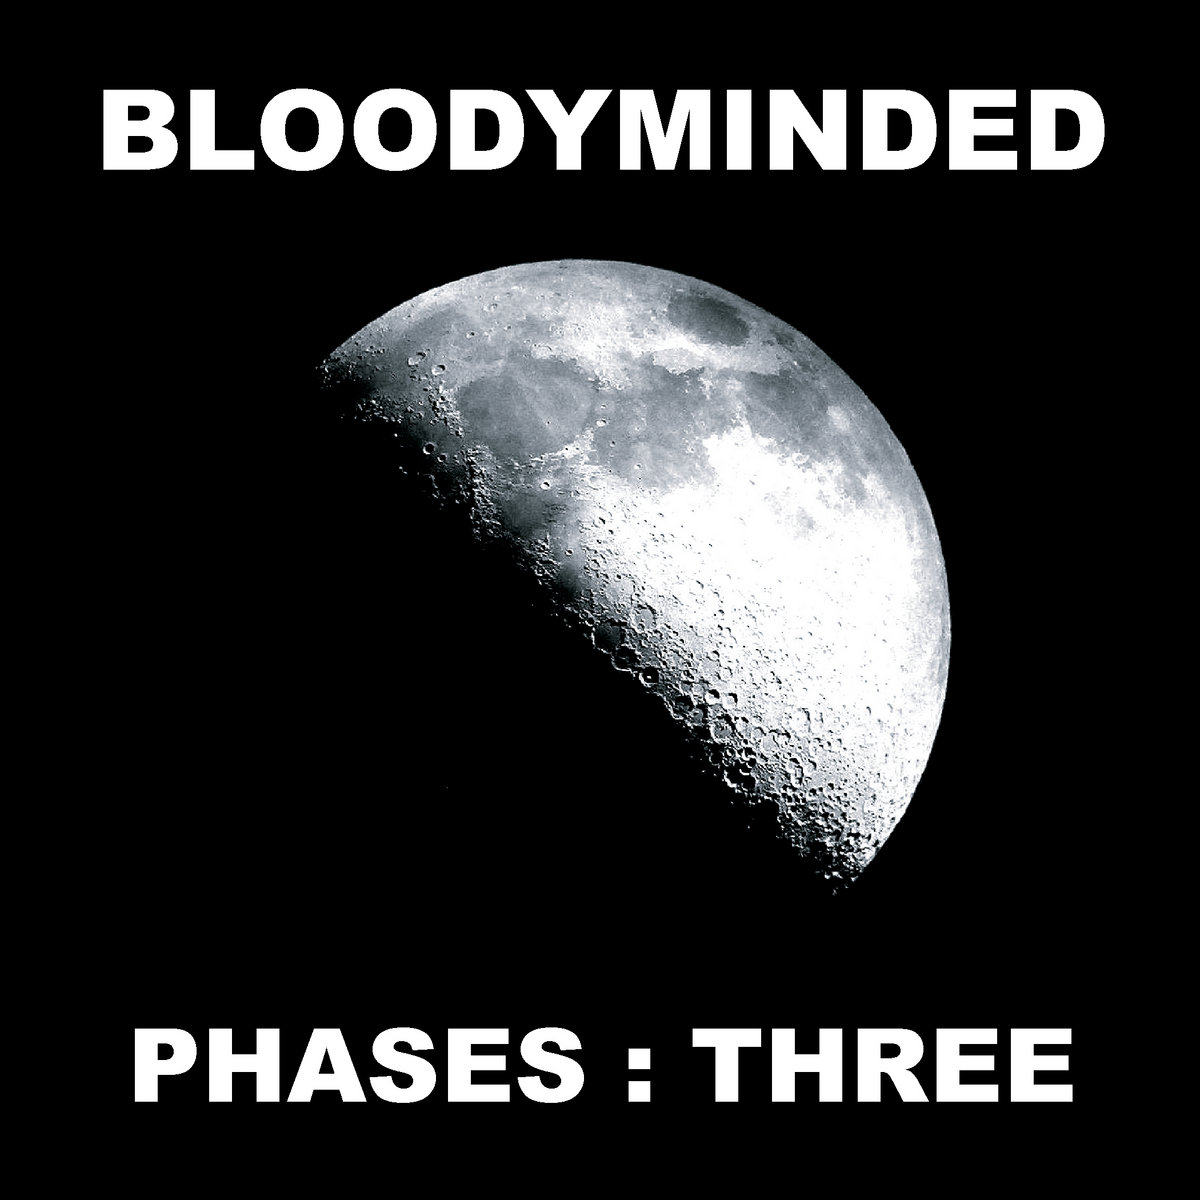 BLOODYMINDED - Phases : Three